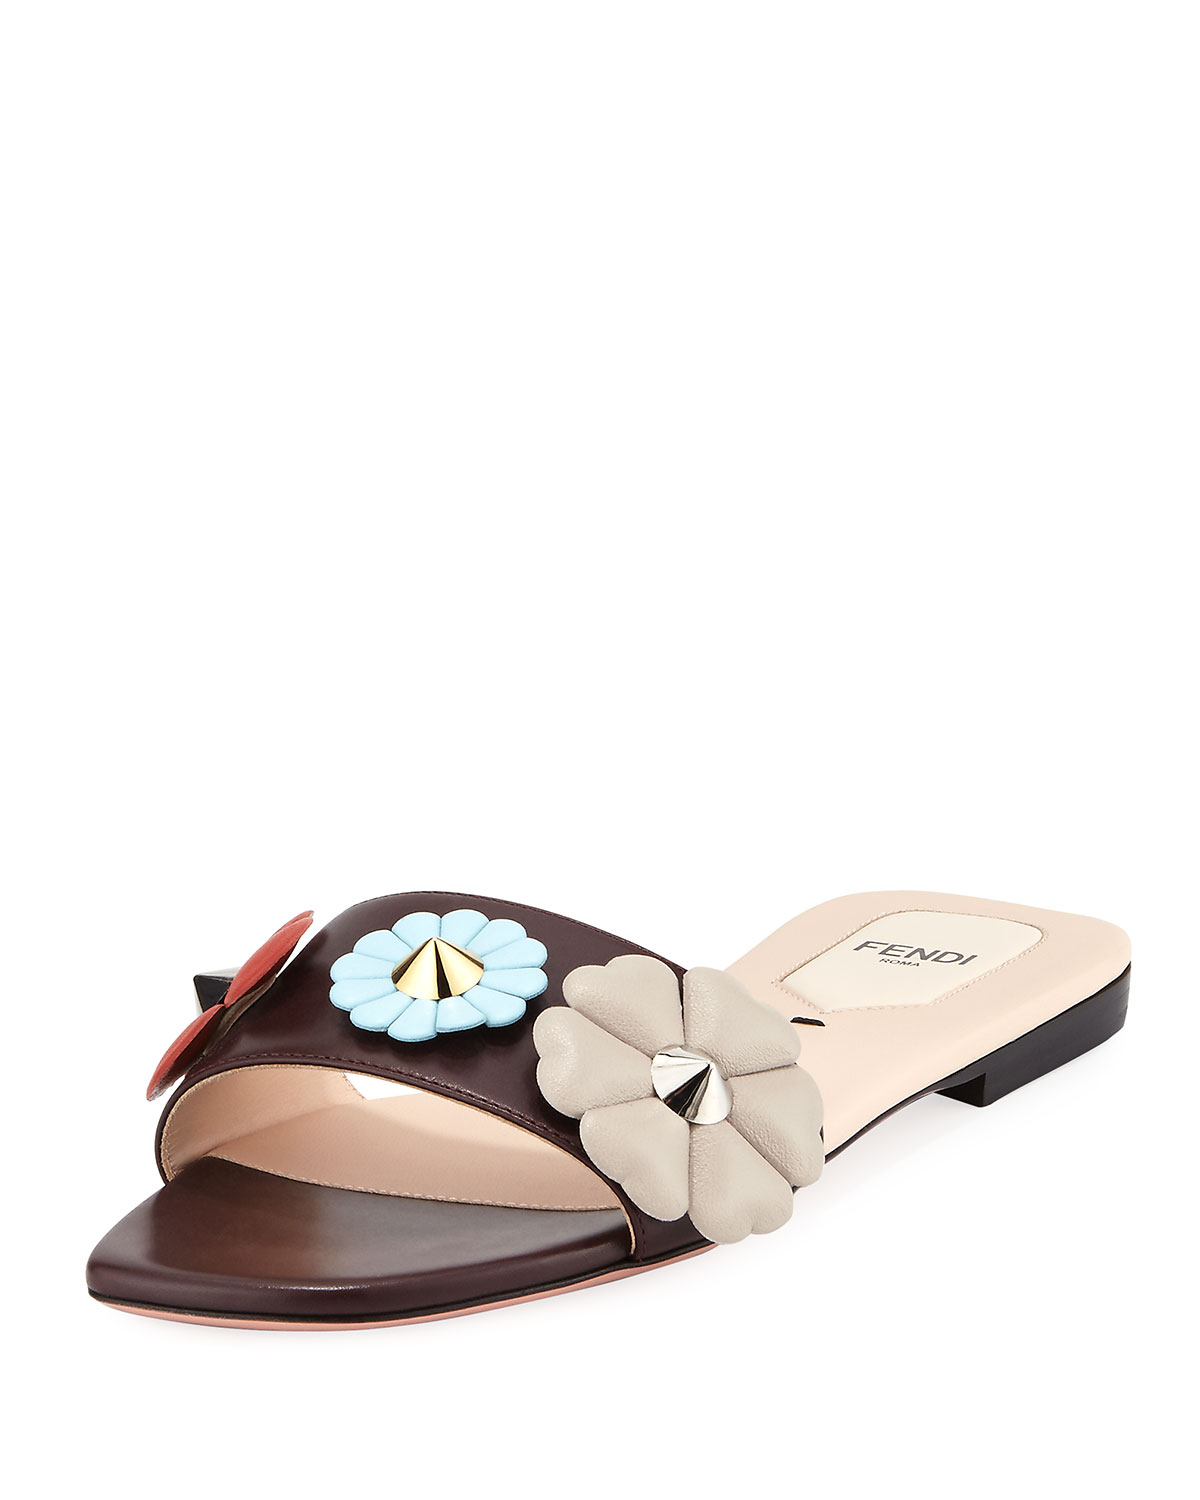 38de259d809 Fendi Three-Flower Flat Slide Sandals